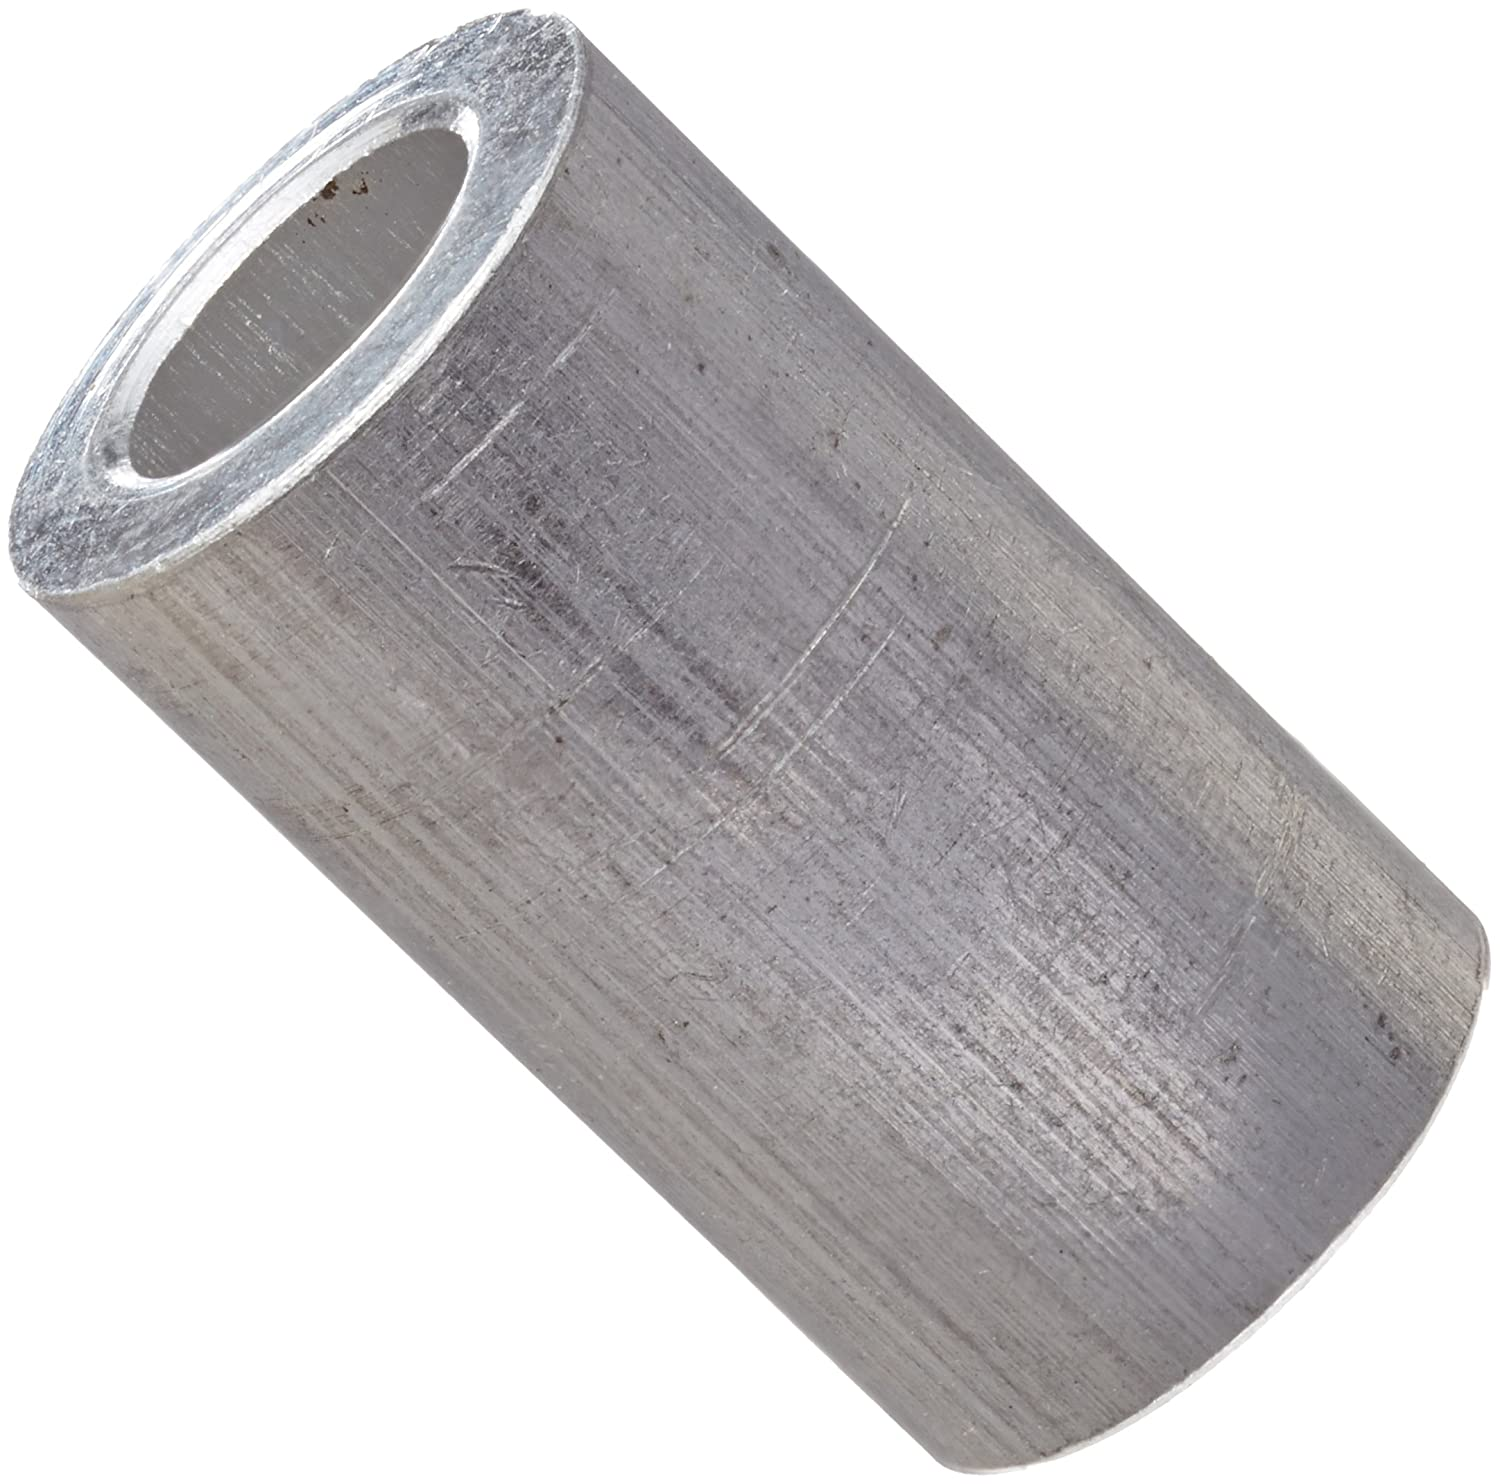 0.14 ID #6 Screw Size Round Spacer Pack of 10 Aluminum Plain Finish Made in US 5//16 OD 1//4 Length